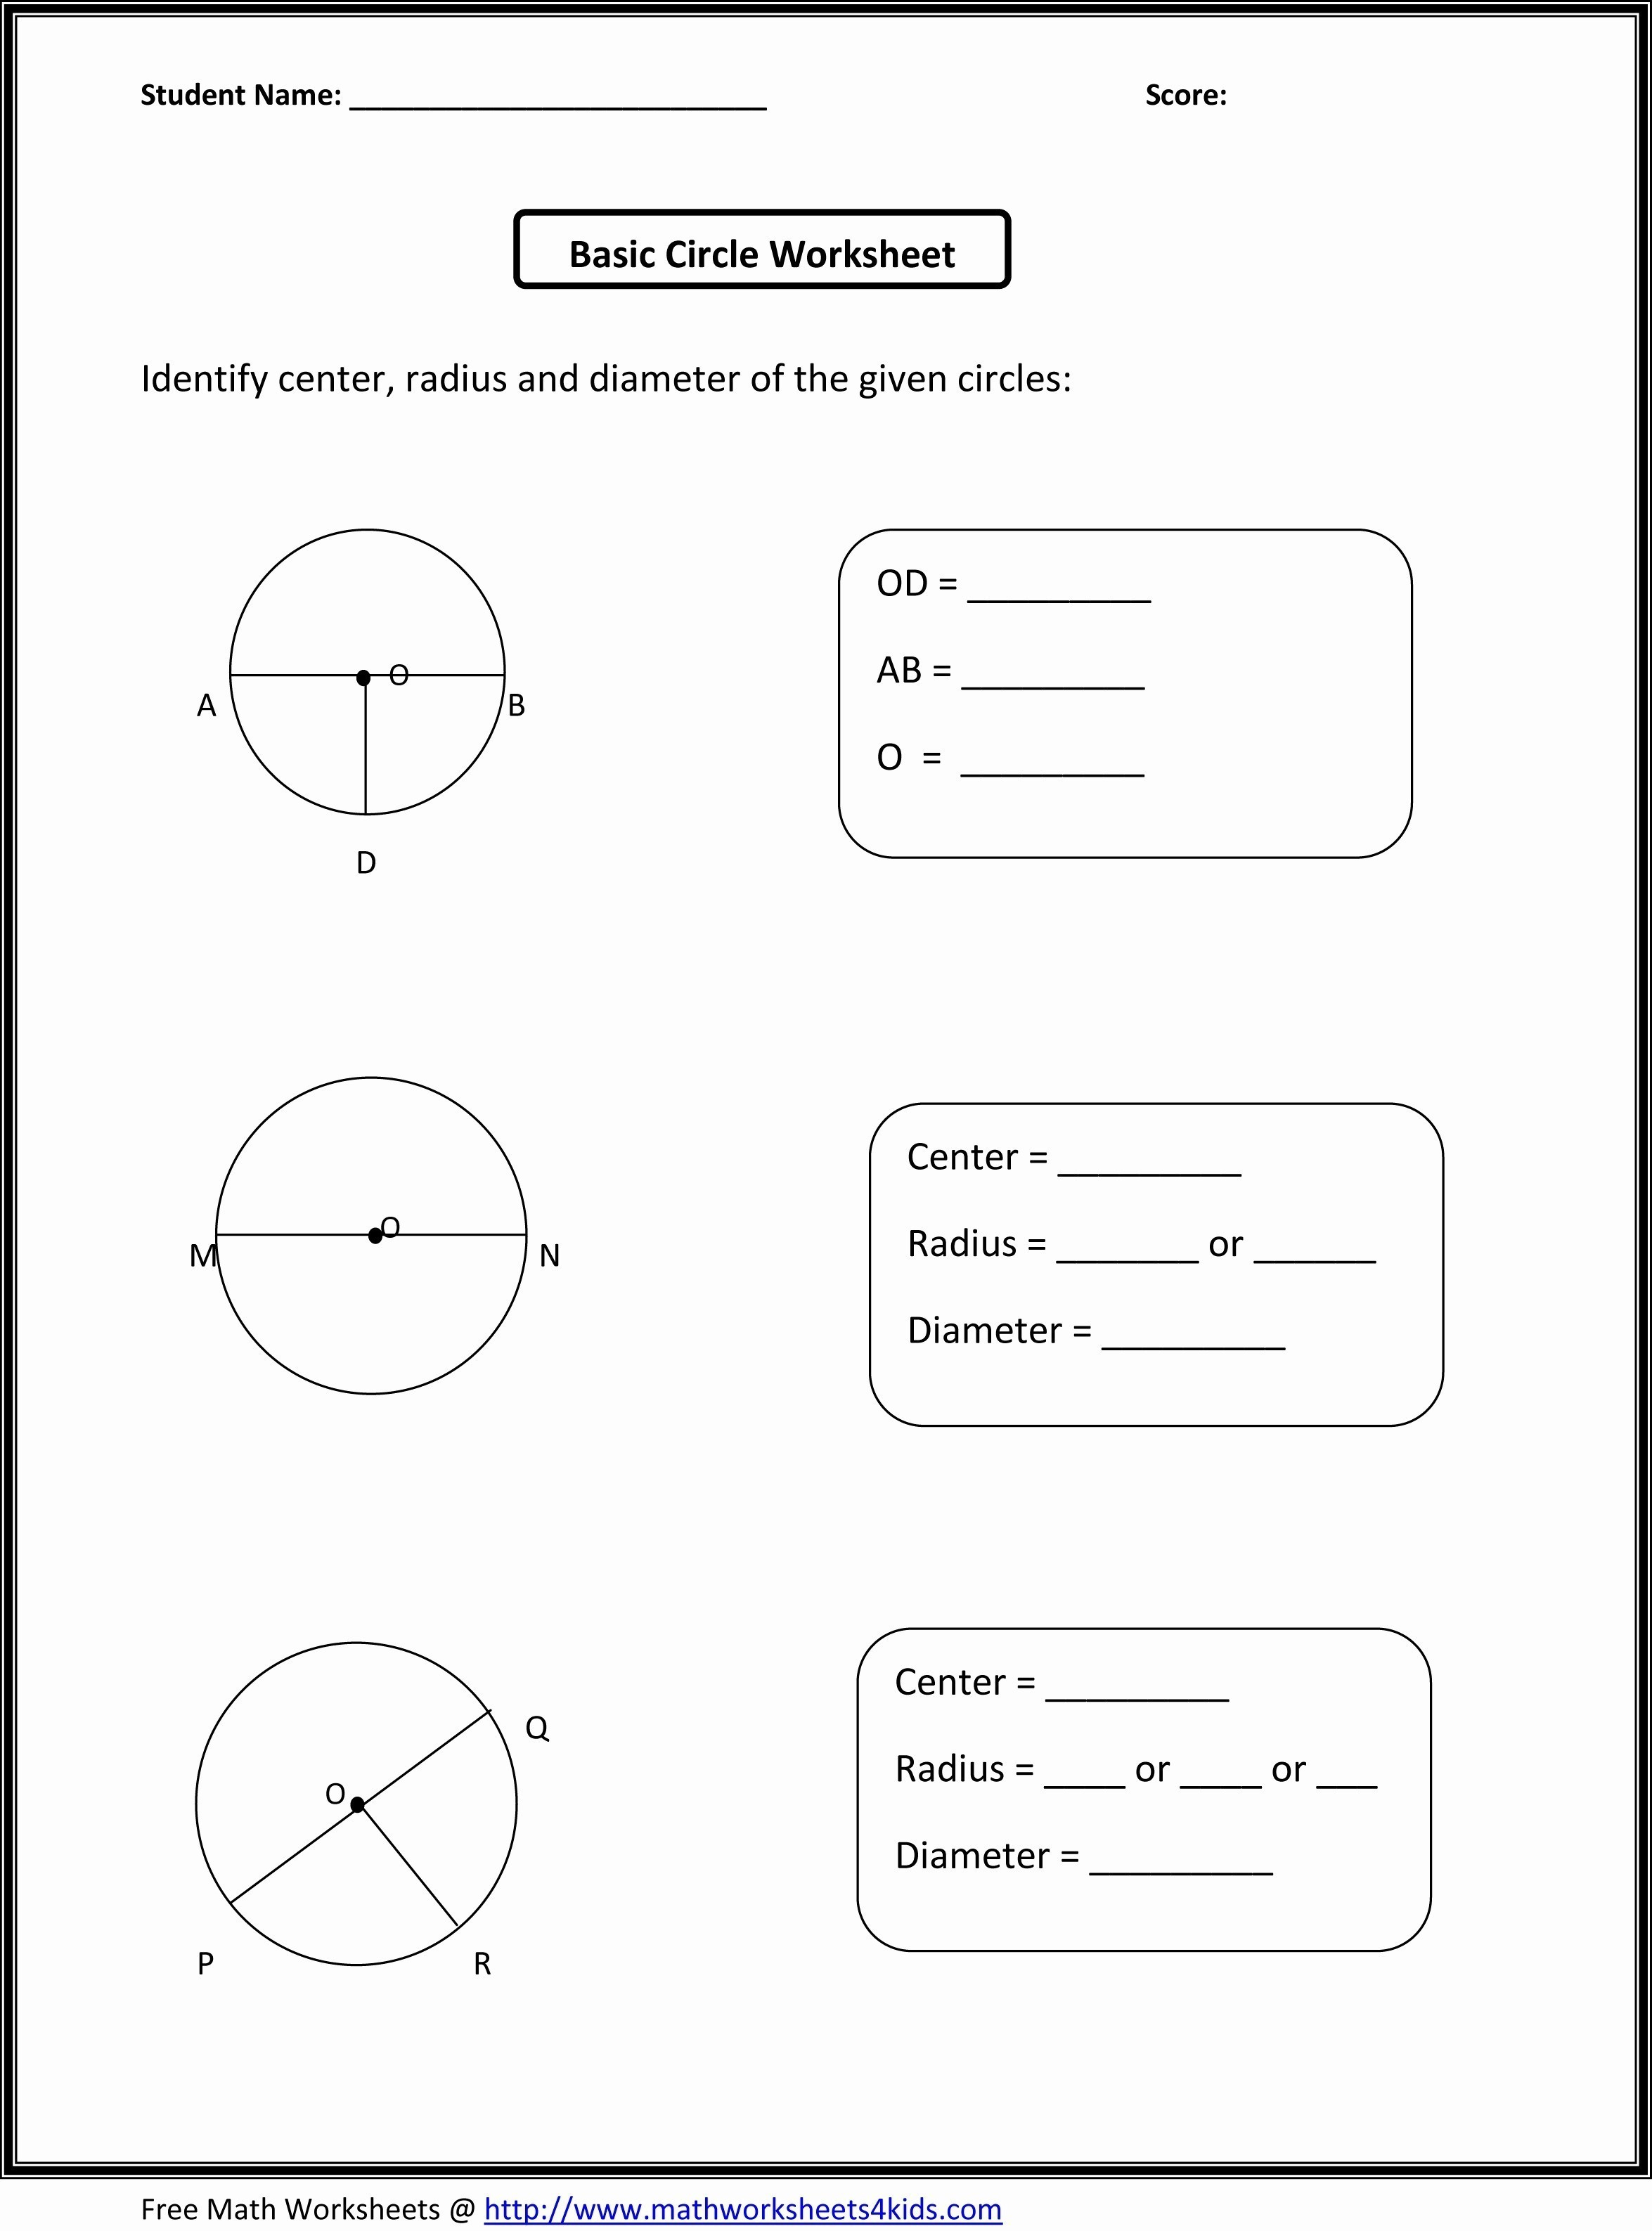 Free Printable Math Worksheets For Grade 6 – Worksheet Template - Free Printable Algebra Worksheets Grade 6